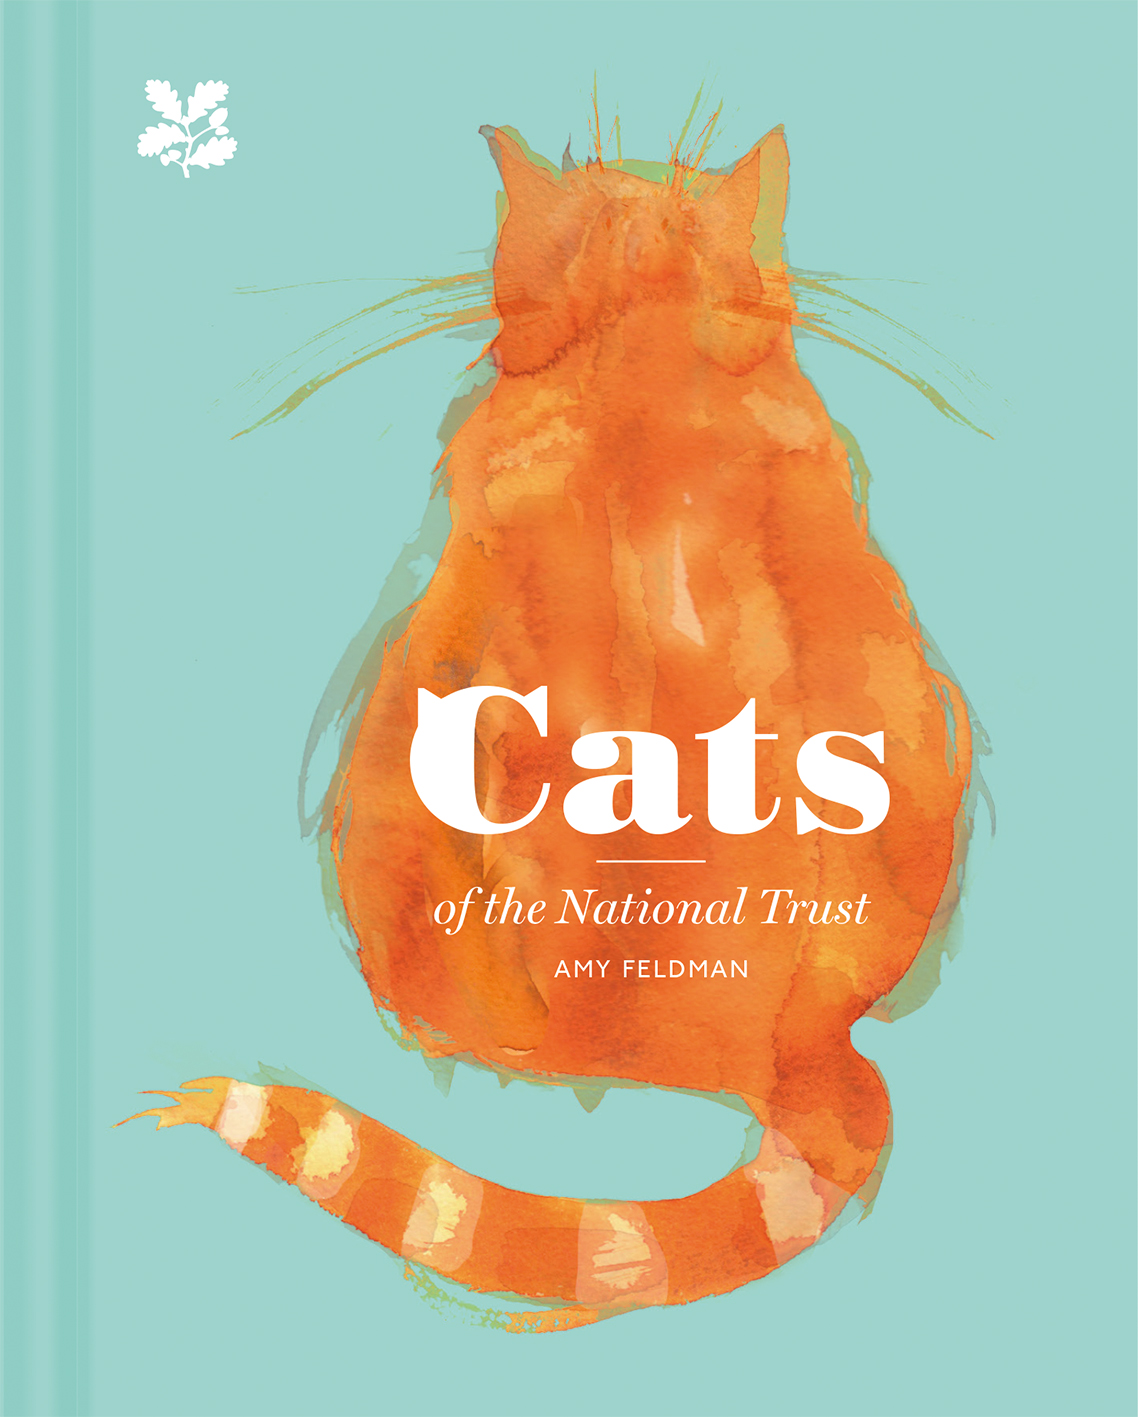 Cats of the National Trust